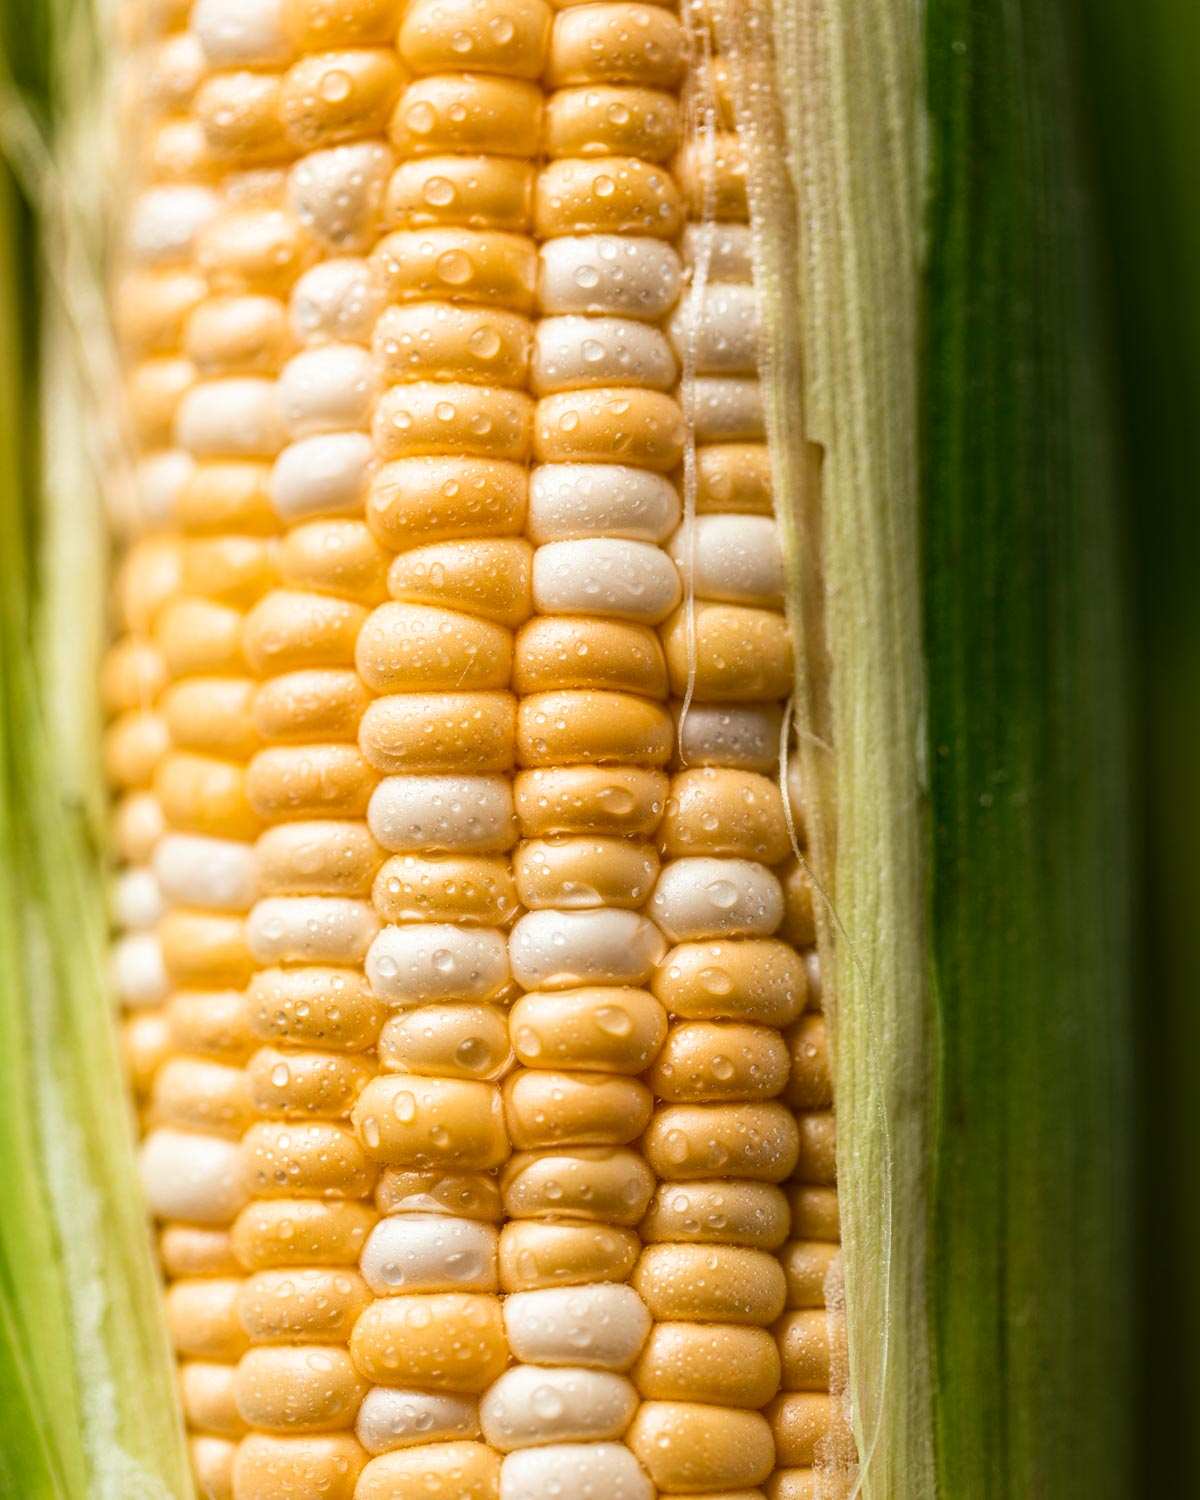 A close-up view of bi-colored corn on the cob.